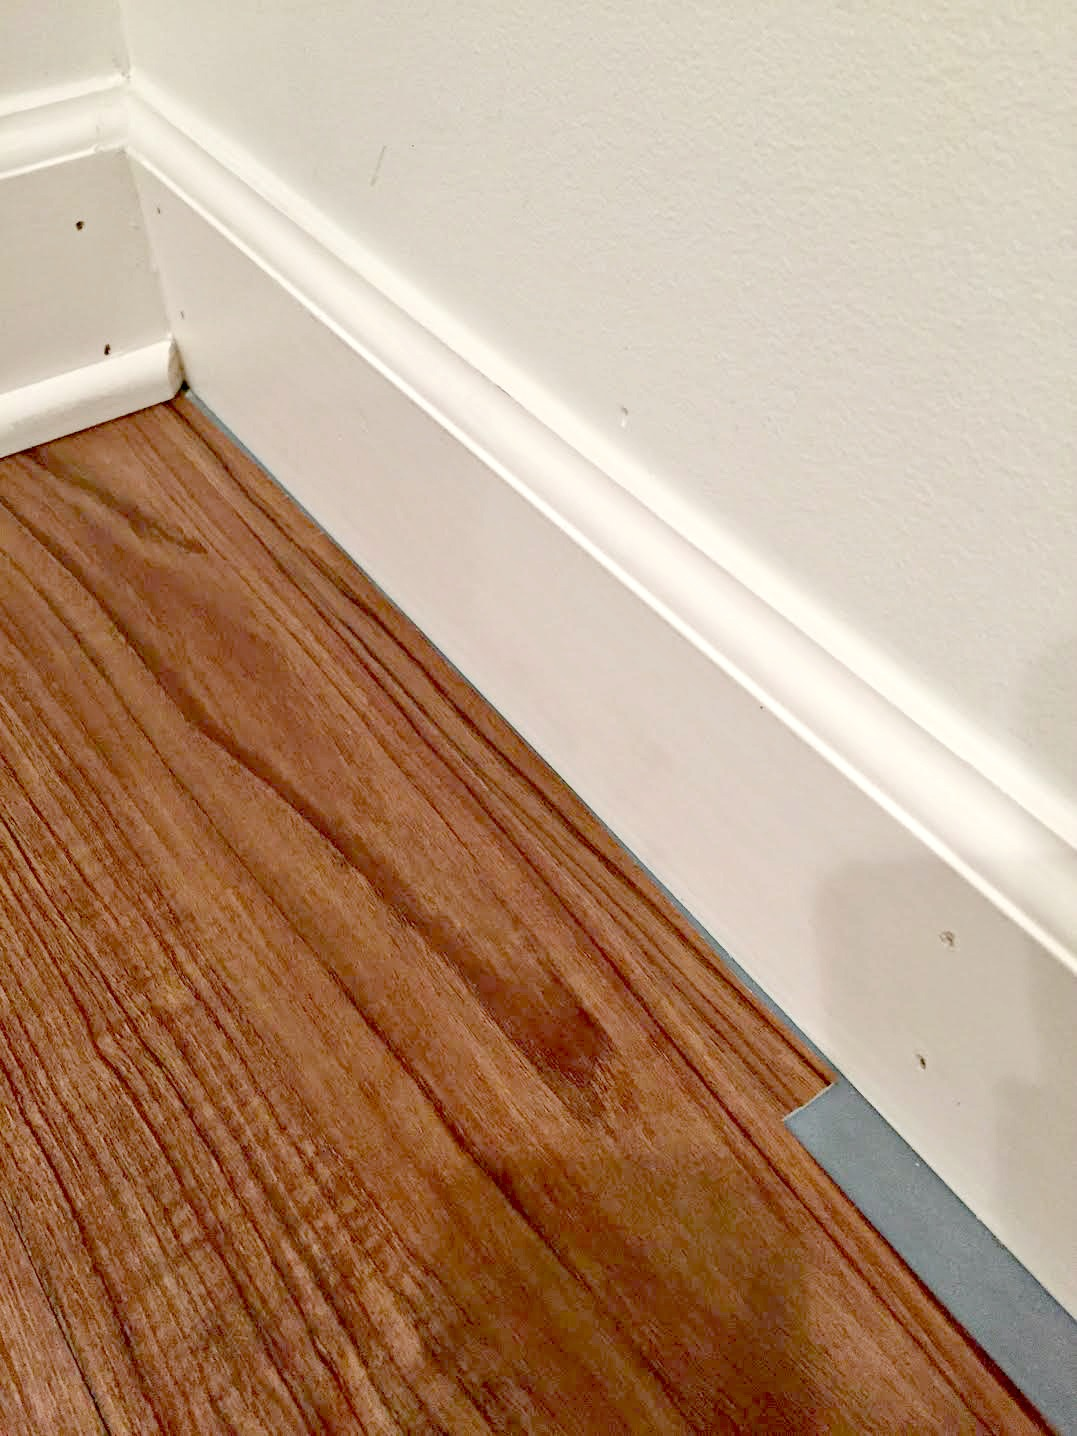 Vinyl Flooring That Looks Like Wood For The Basement